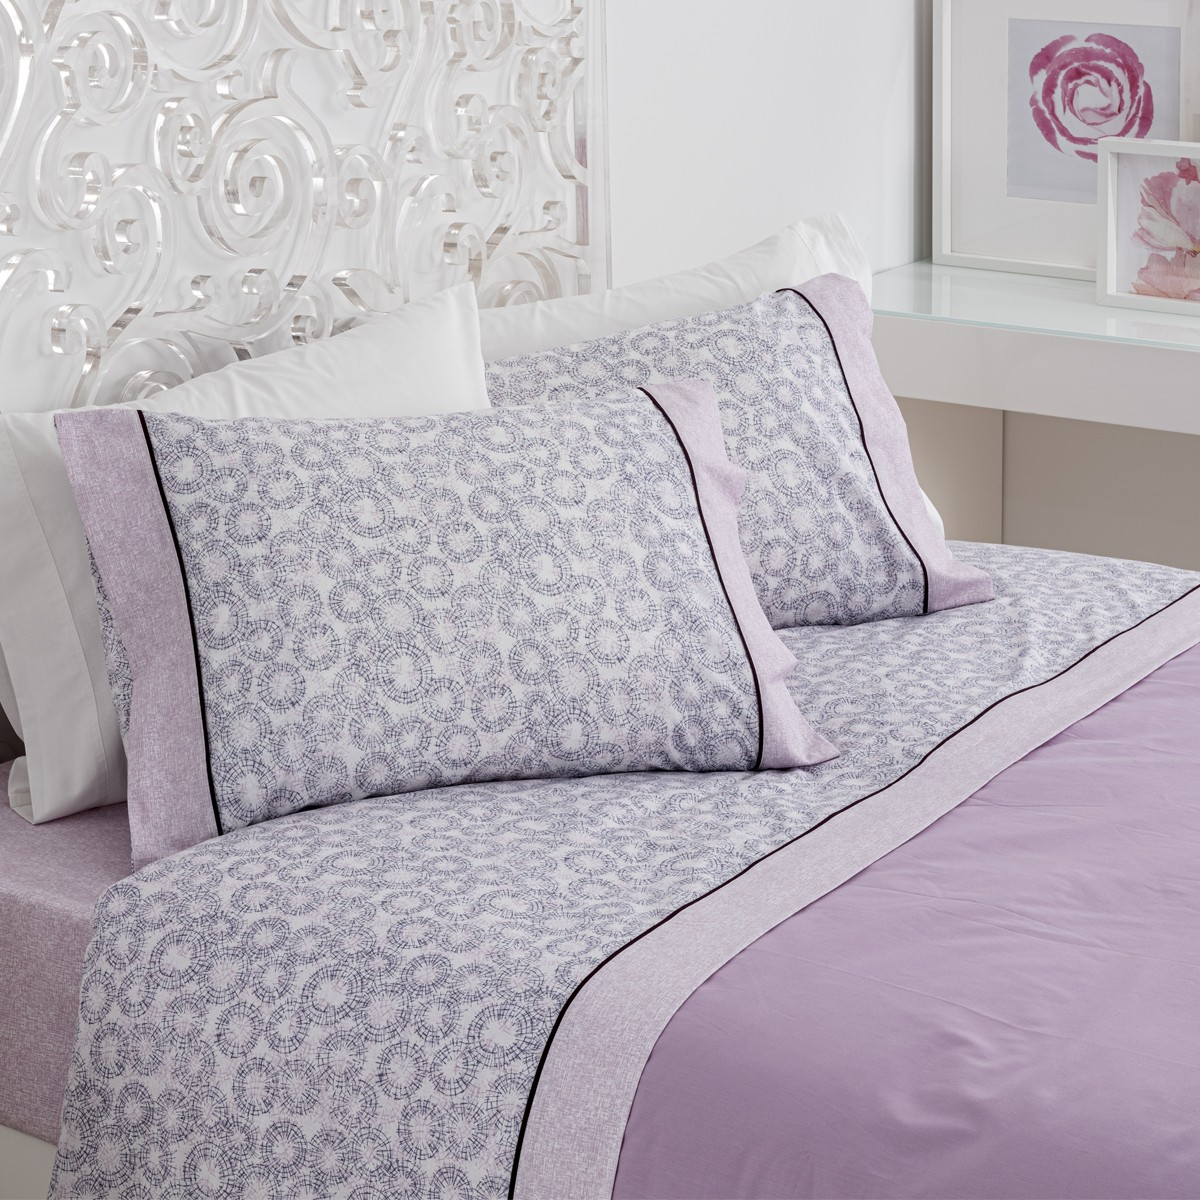 Sheet Set, Mindelo